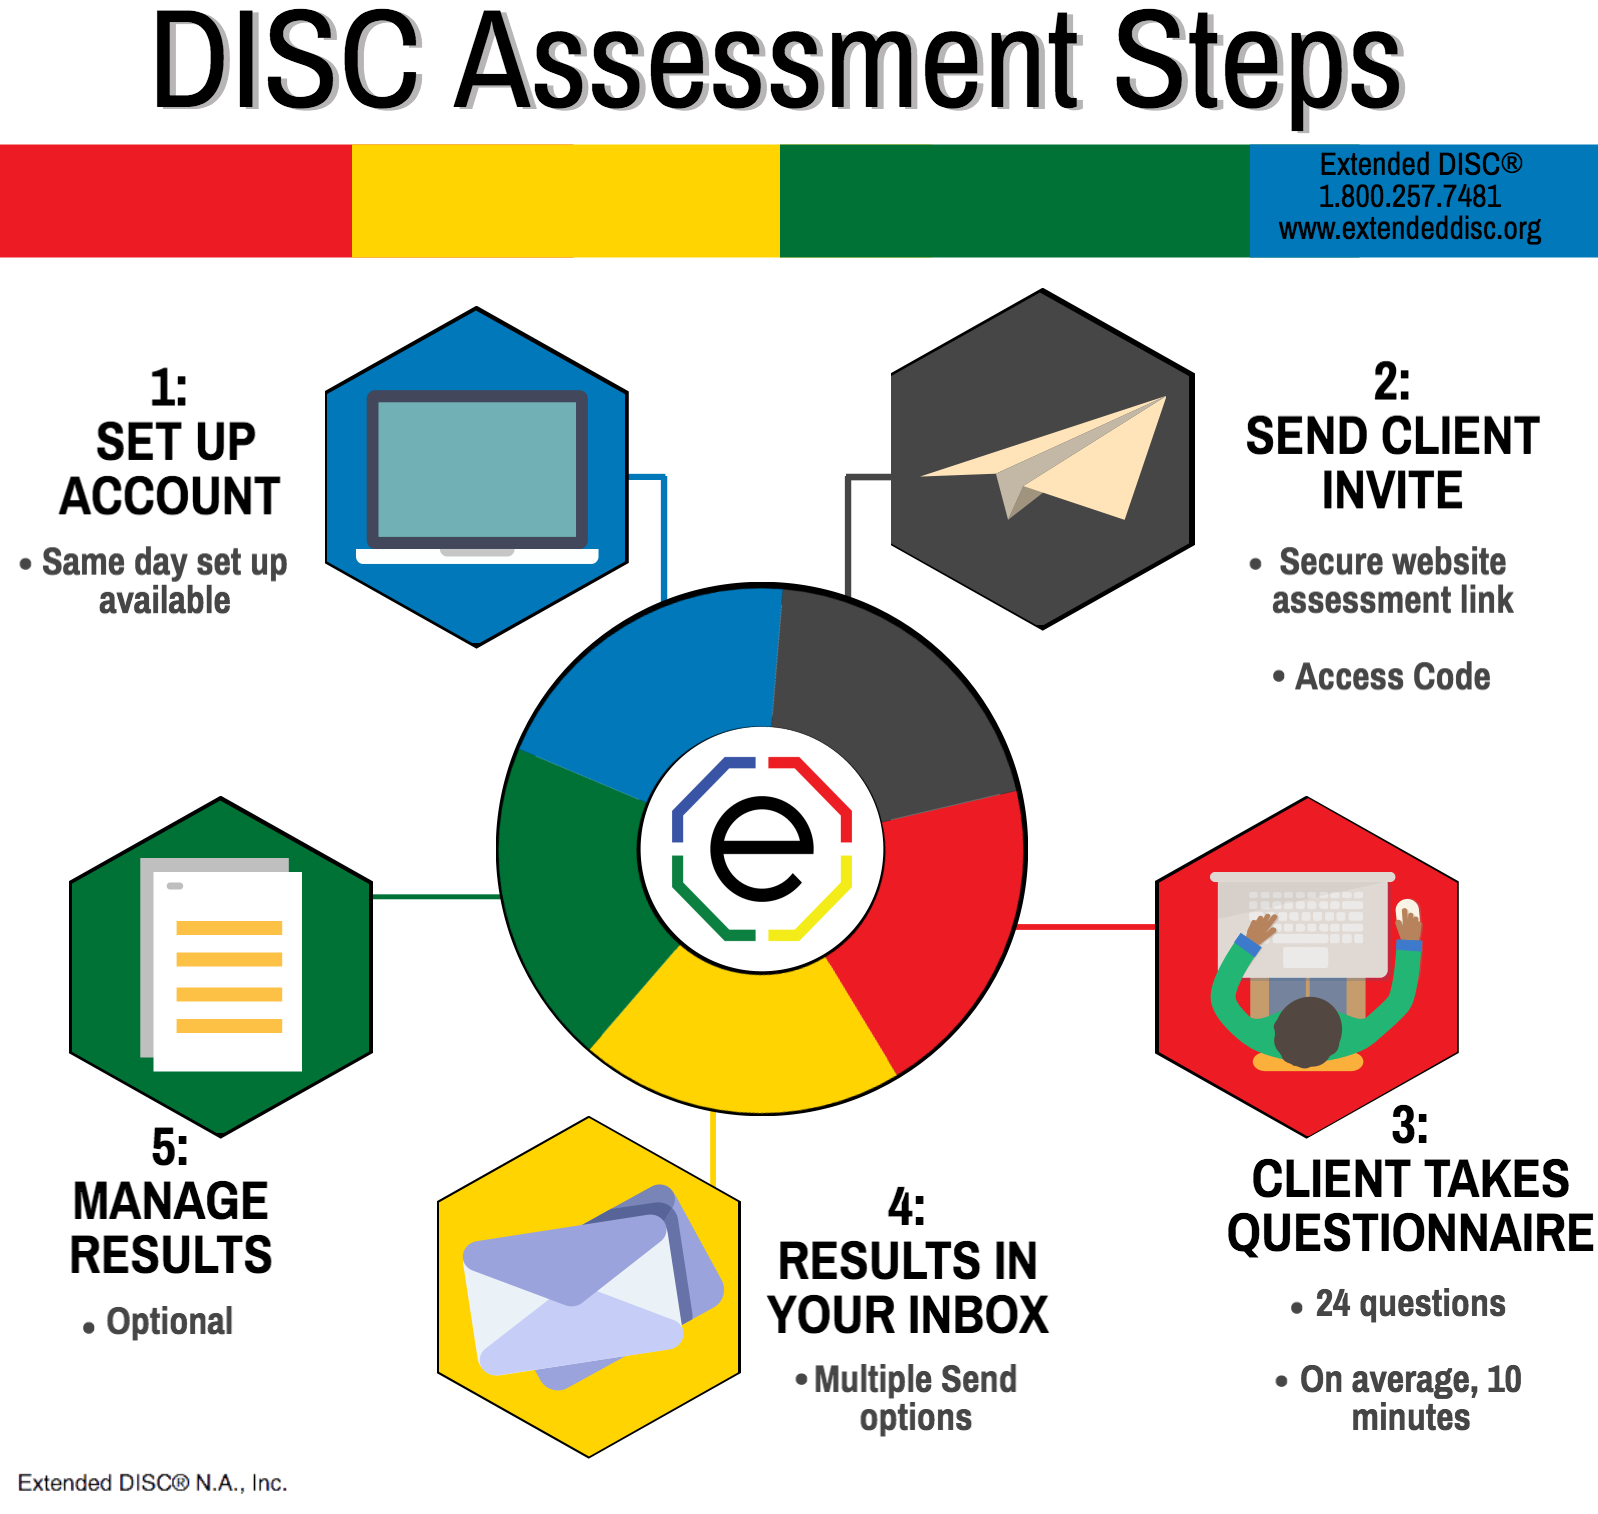 Process of using Extended DISC Assessments